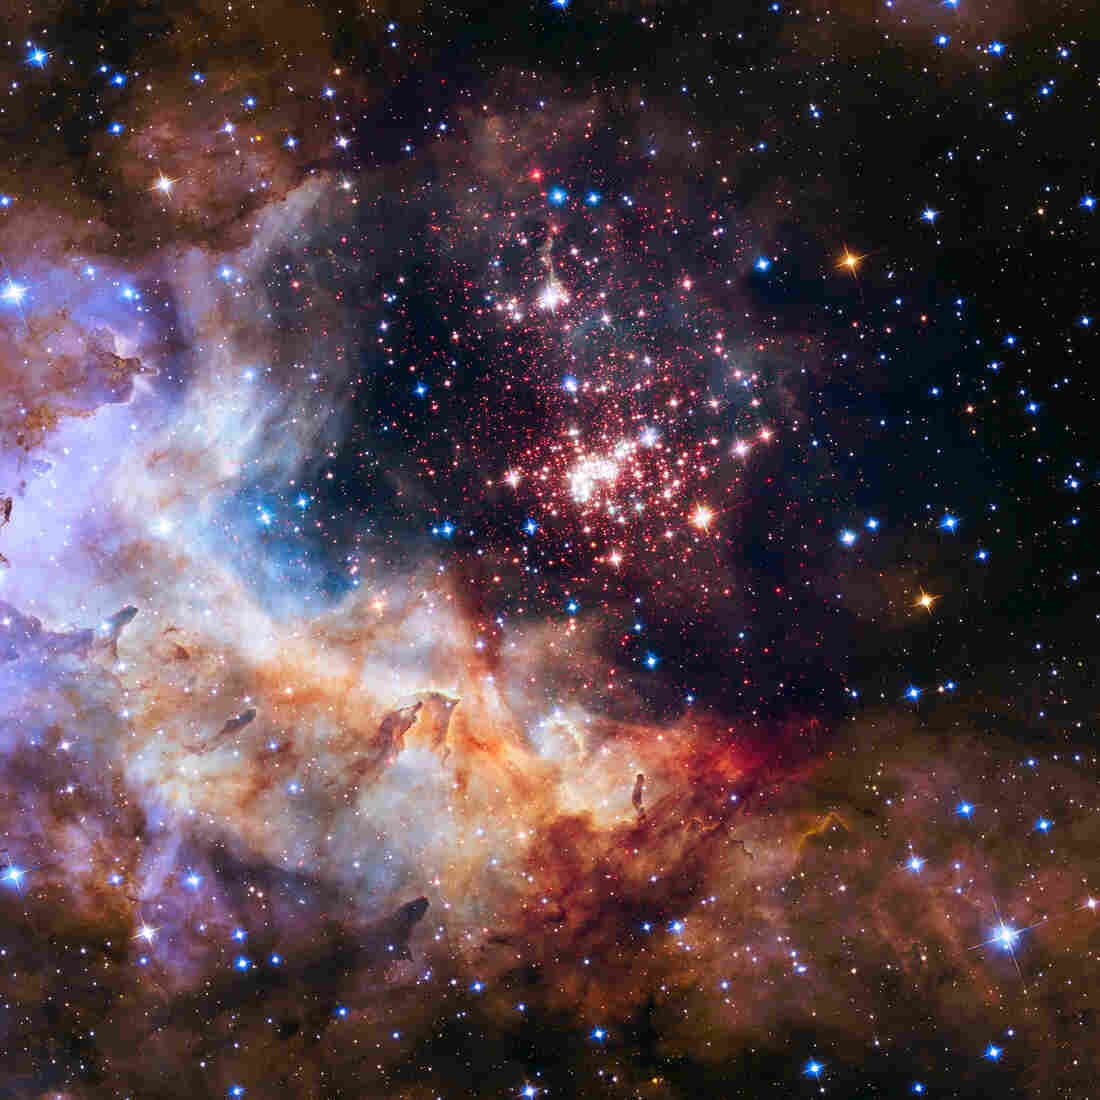 After 25 Years, The Hubble Space Telescope Still Wows Humanity